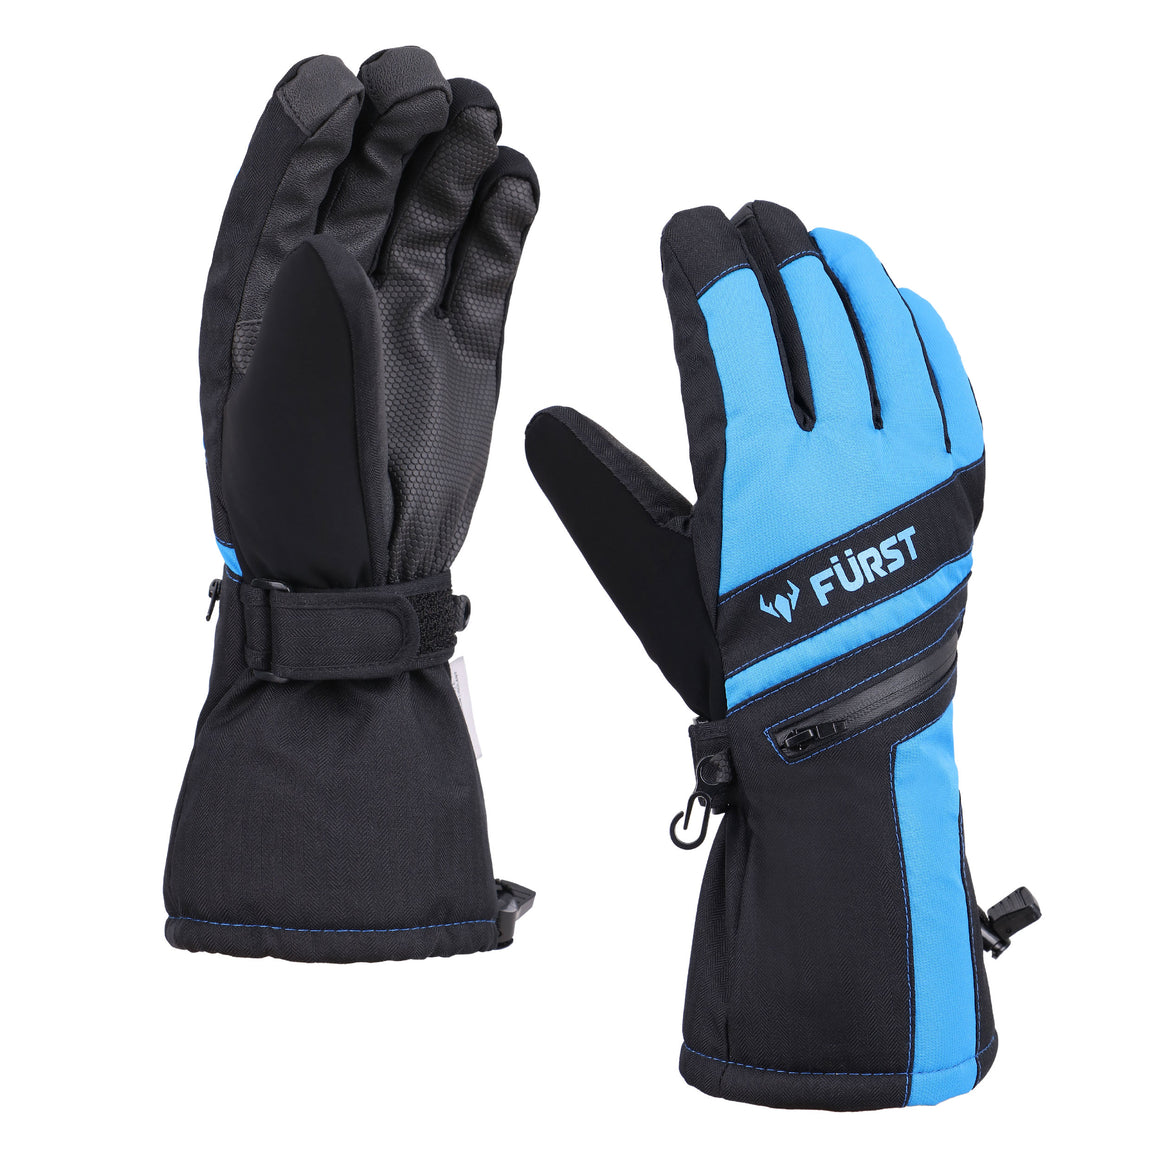 Men's Storm Touchscreen Winter Gloves and Scarf Set (Blue)